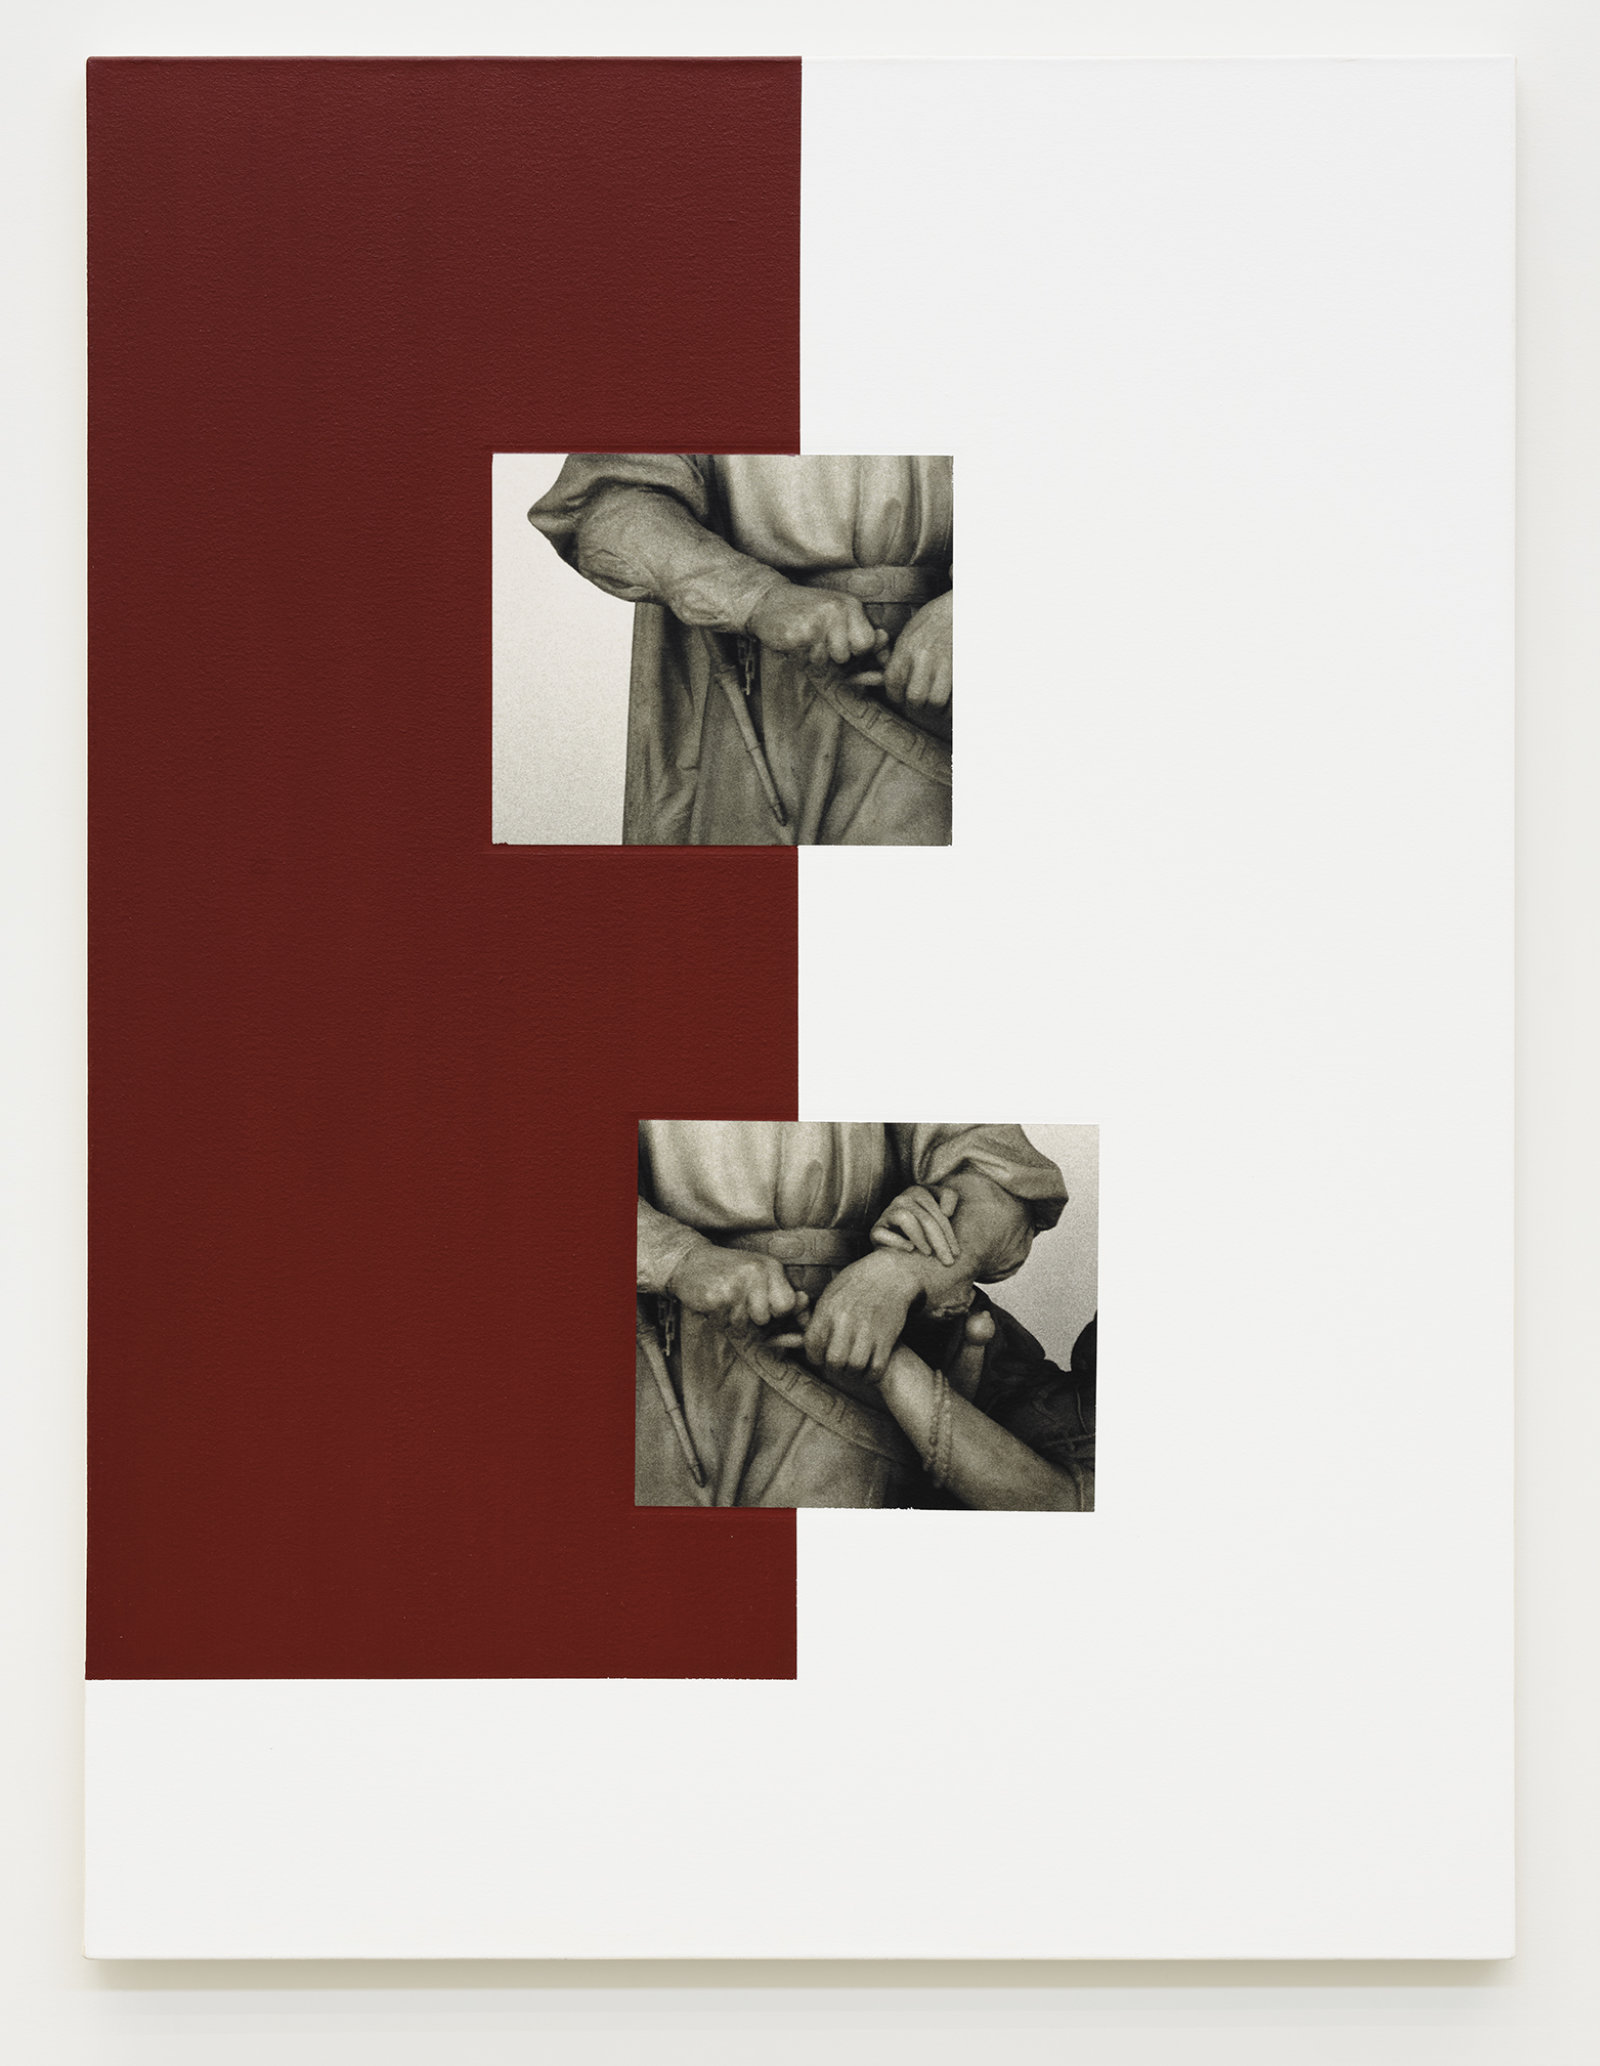 Ian Wallace, Historia, 2008, photolaminate with acrylic on canvas, 48 x 36 in. (122 x 91 cm) by Ian Wallace